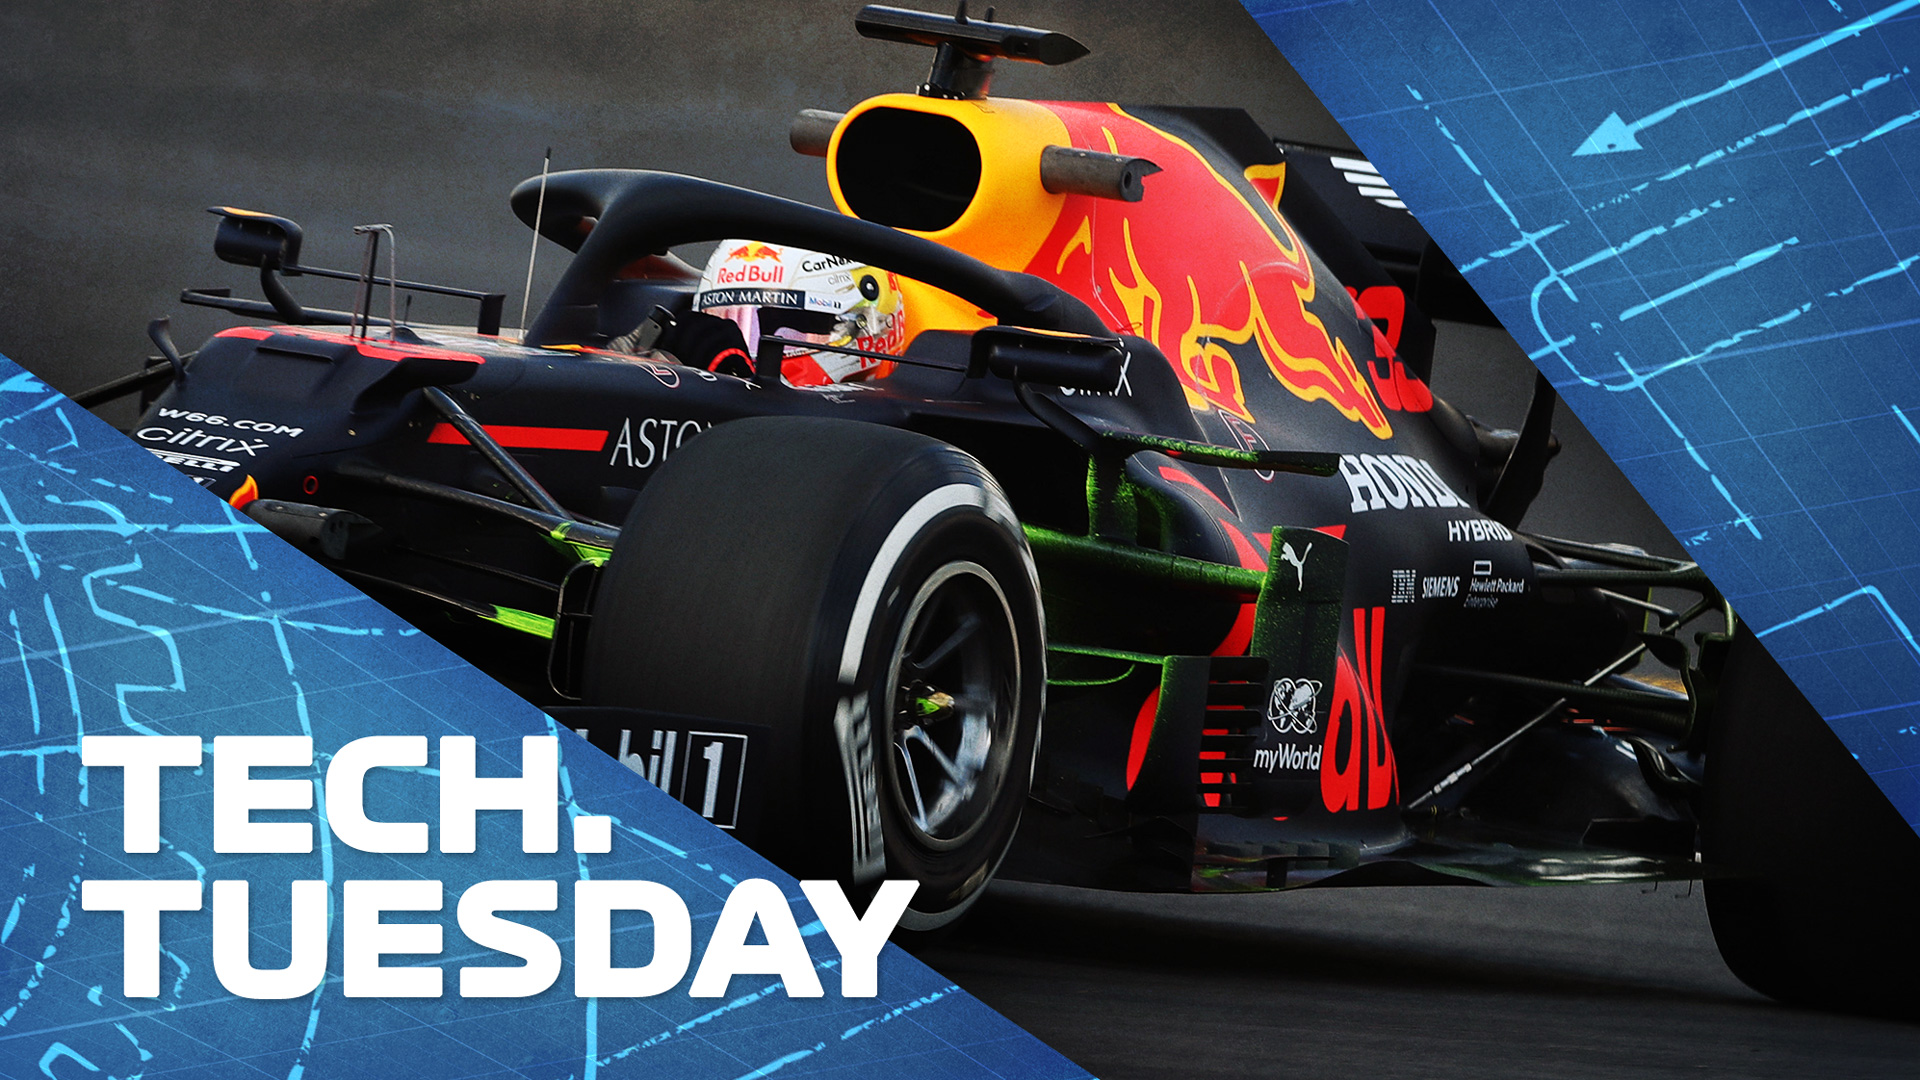 Tech Tuesday How Teams Like Red Bull And Ferrari Are Already Tackling The 2021 Downforce Cut Formula 1